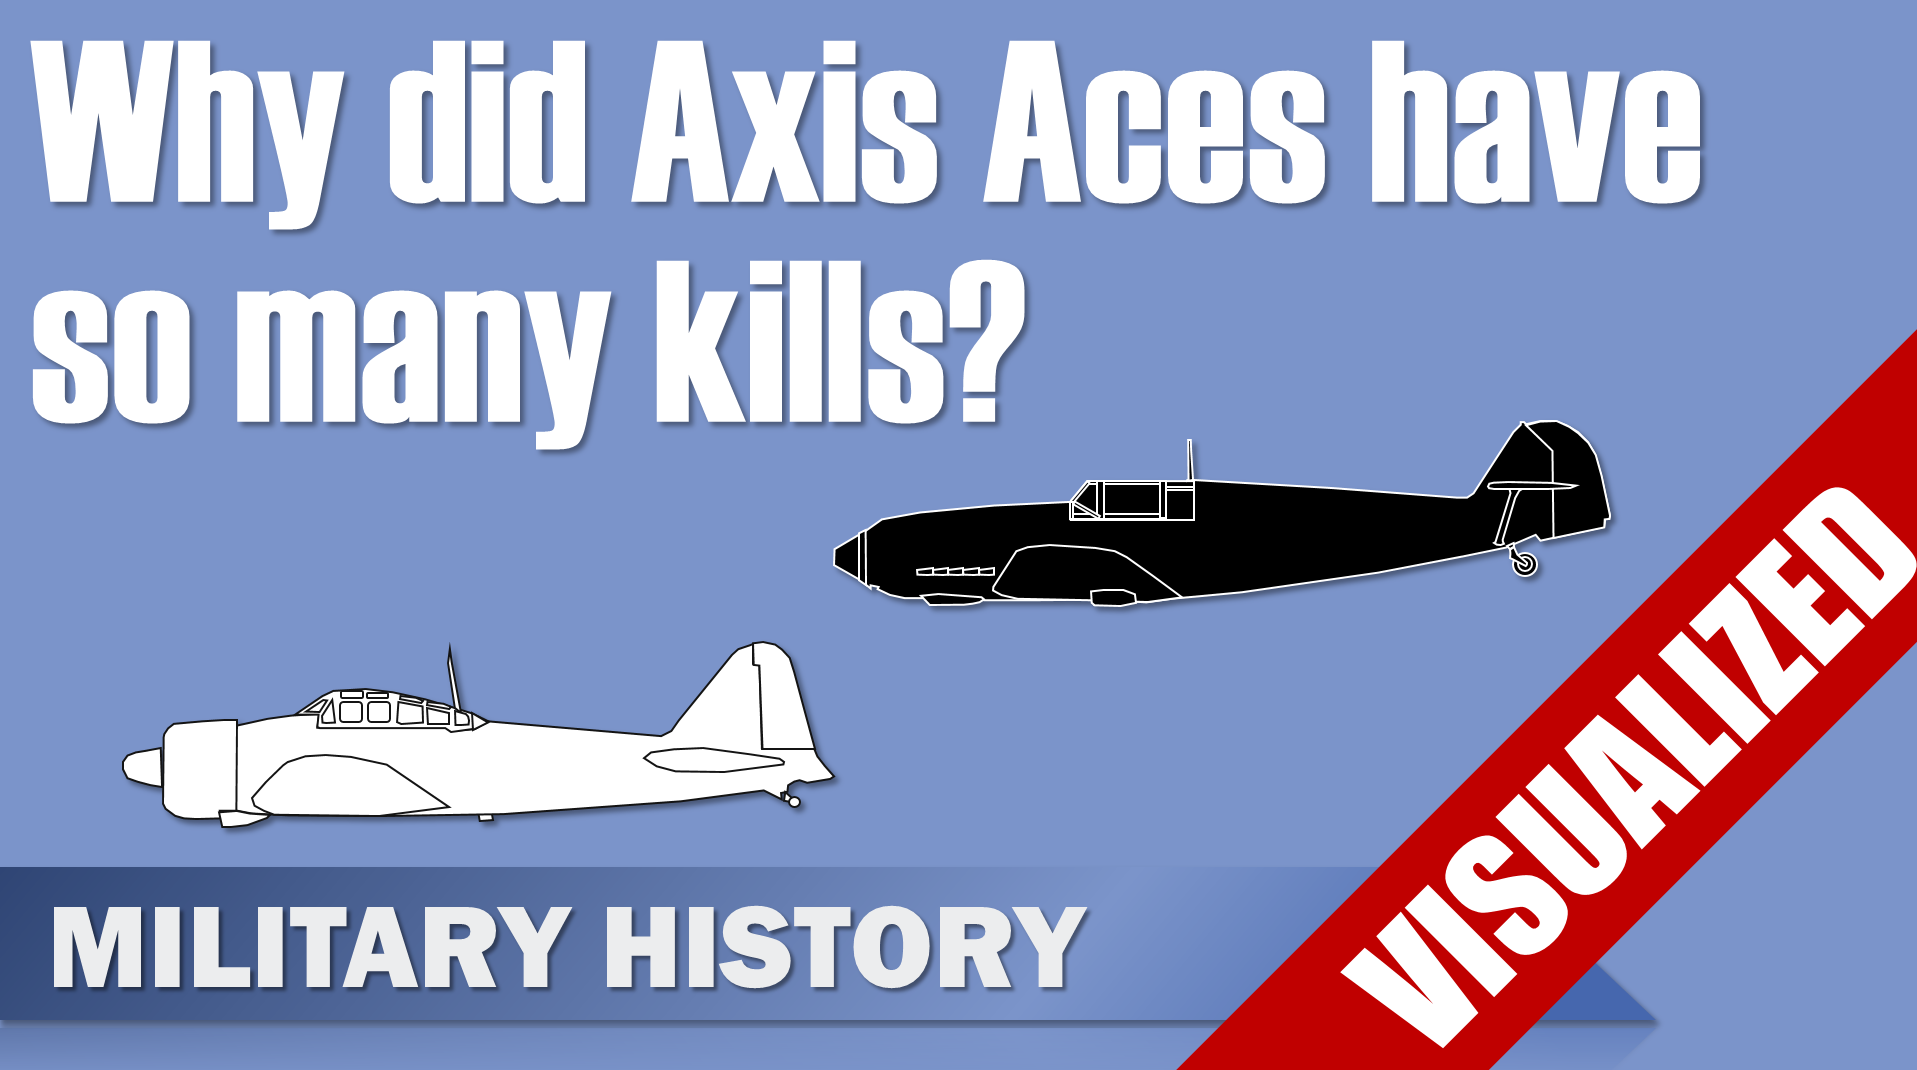 Why Did Axis Aces Have So Many Kills